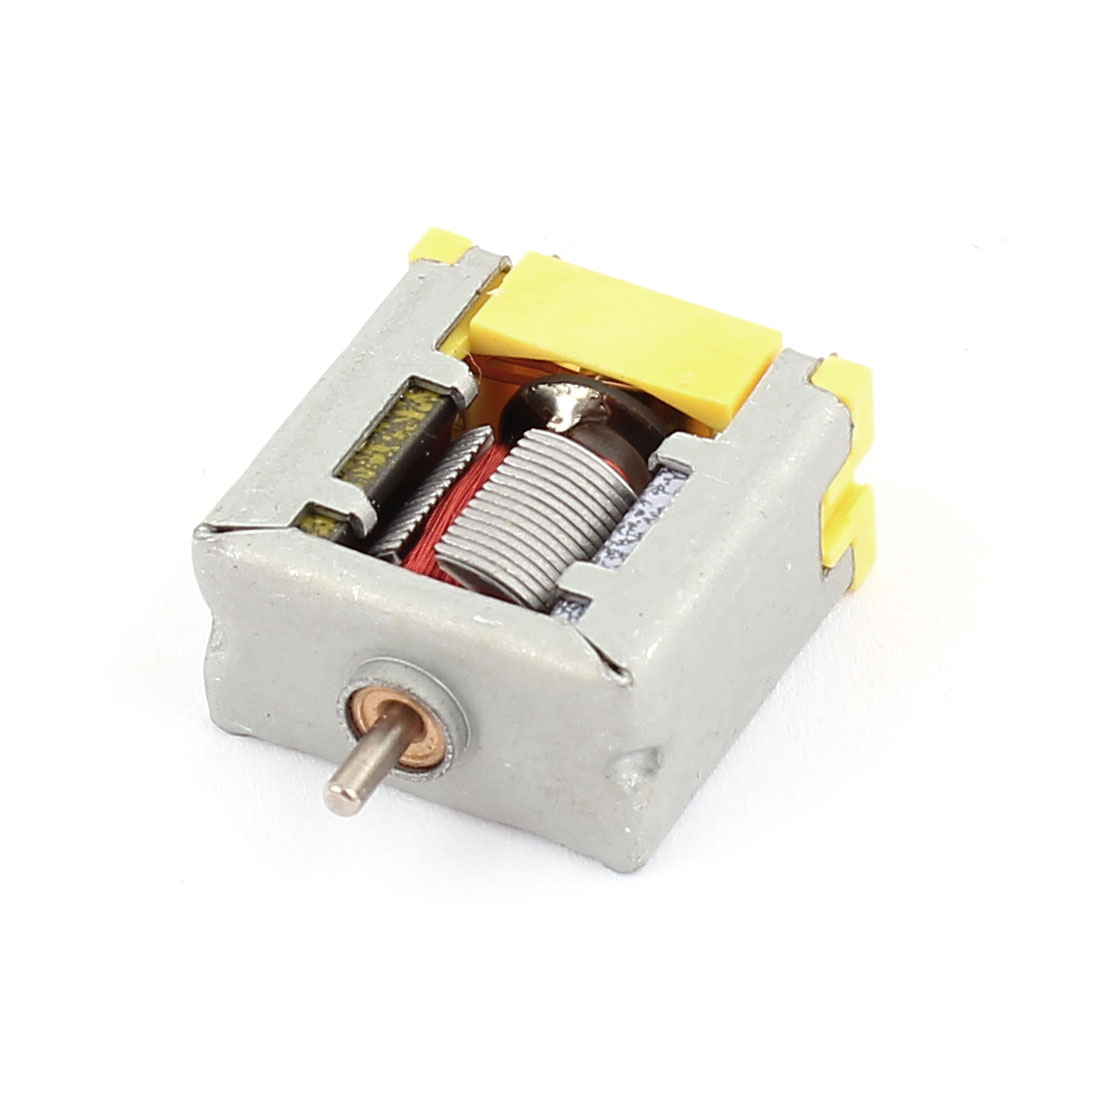 DC 3V 12000RPM N20 Bare Magnetic Brush Micro Motor for Toys